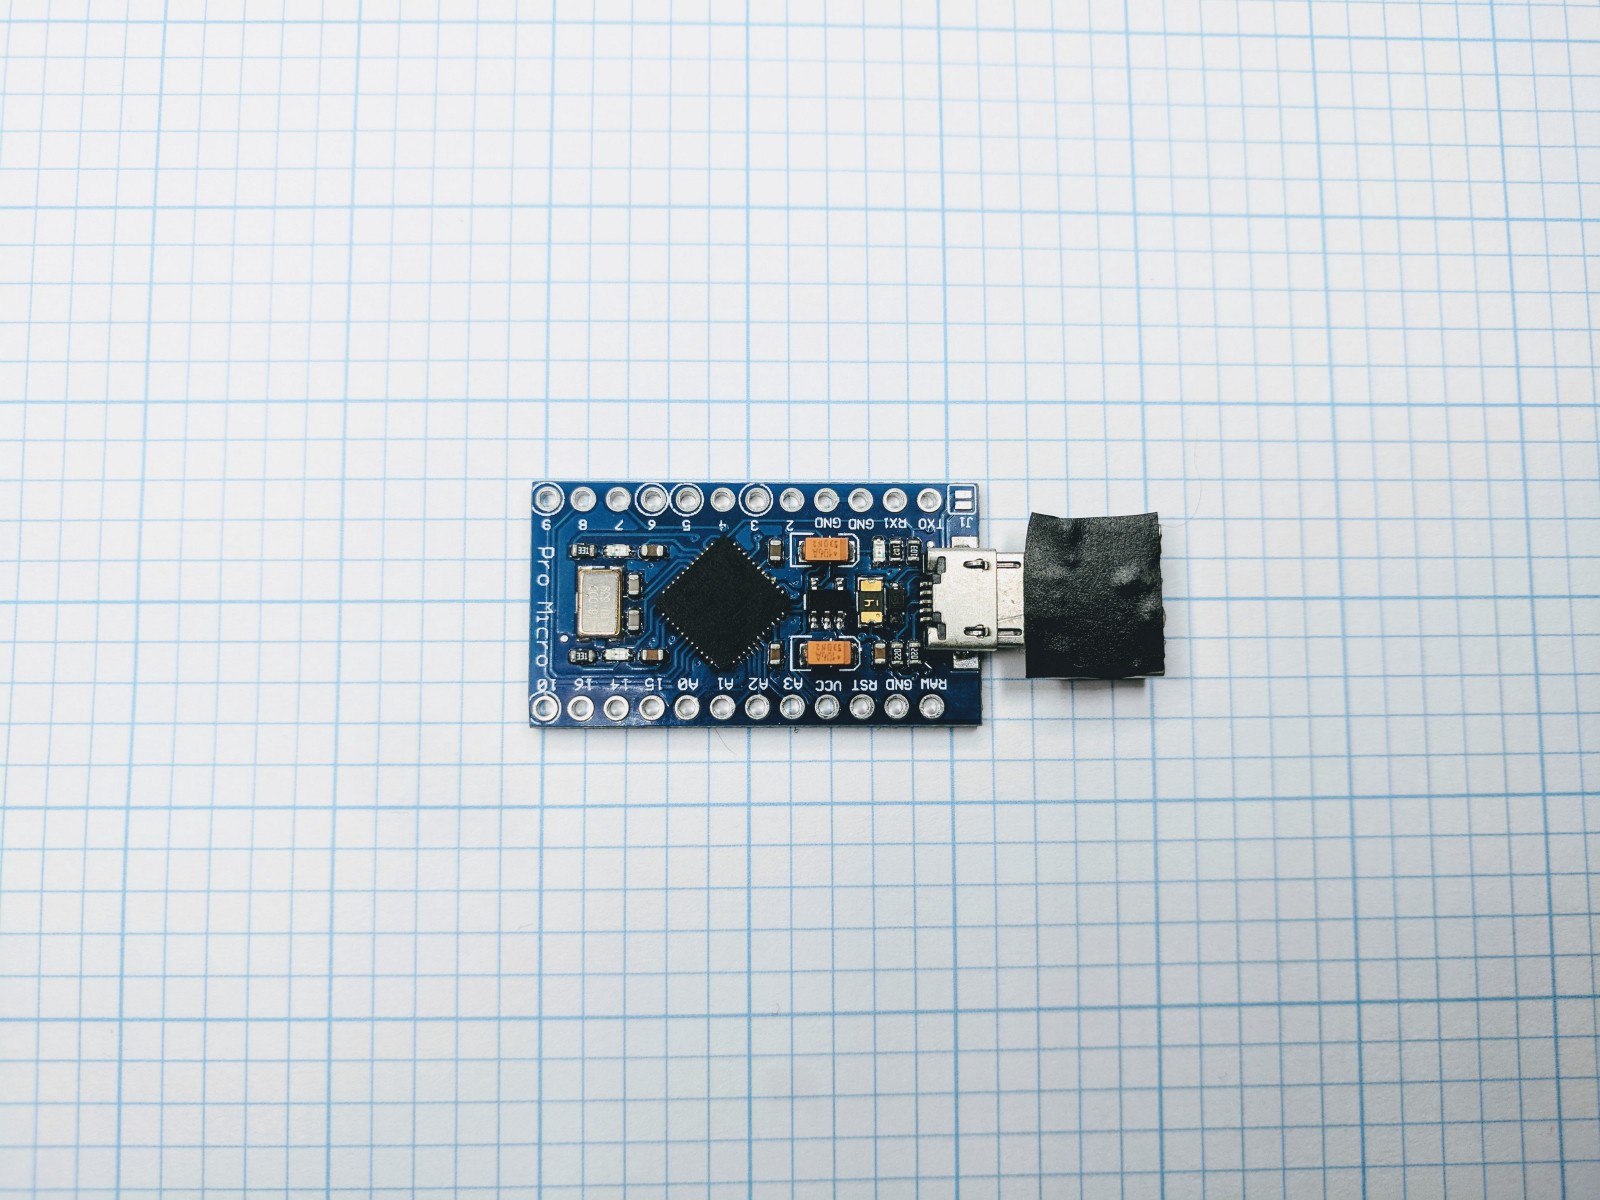 Building A Usb Rubber Ducky For 7 Adam Eaton Medium Build Your Own Arduino Amp Bootload An Atmega Microcontroller 8211 Part 1 I Didnt Have Drive Large Enough To Fit It So Outfitted With Otg Adapter And Some Electrical Tape Called Day